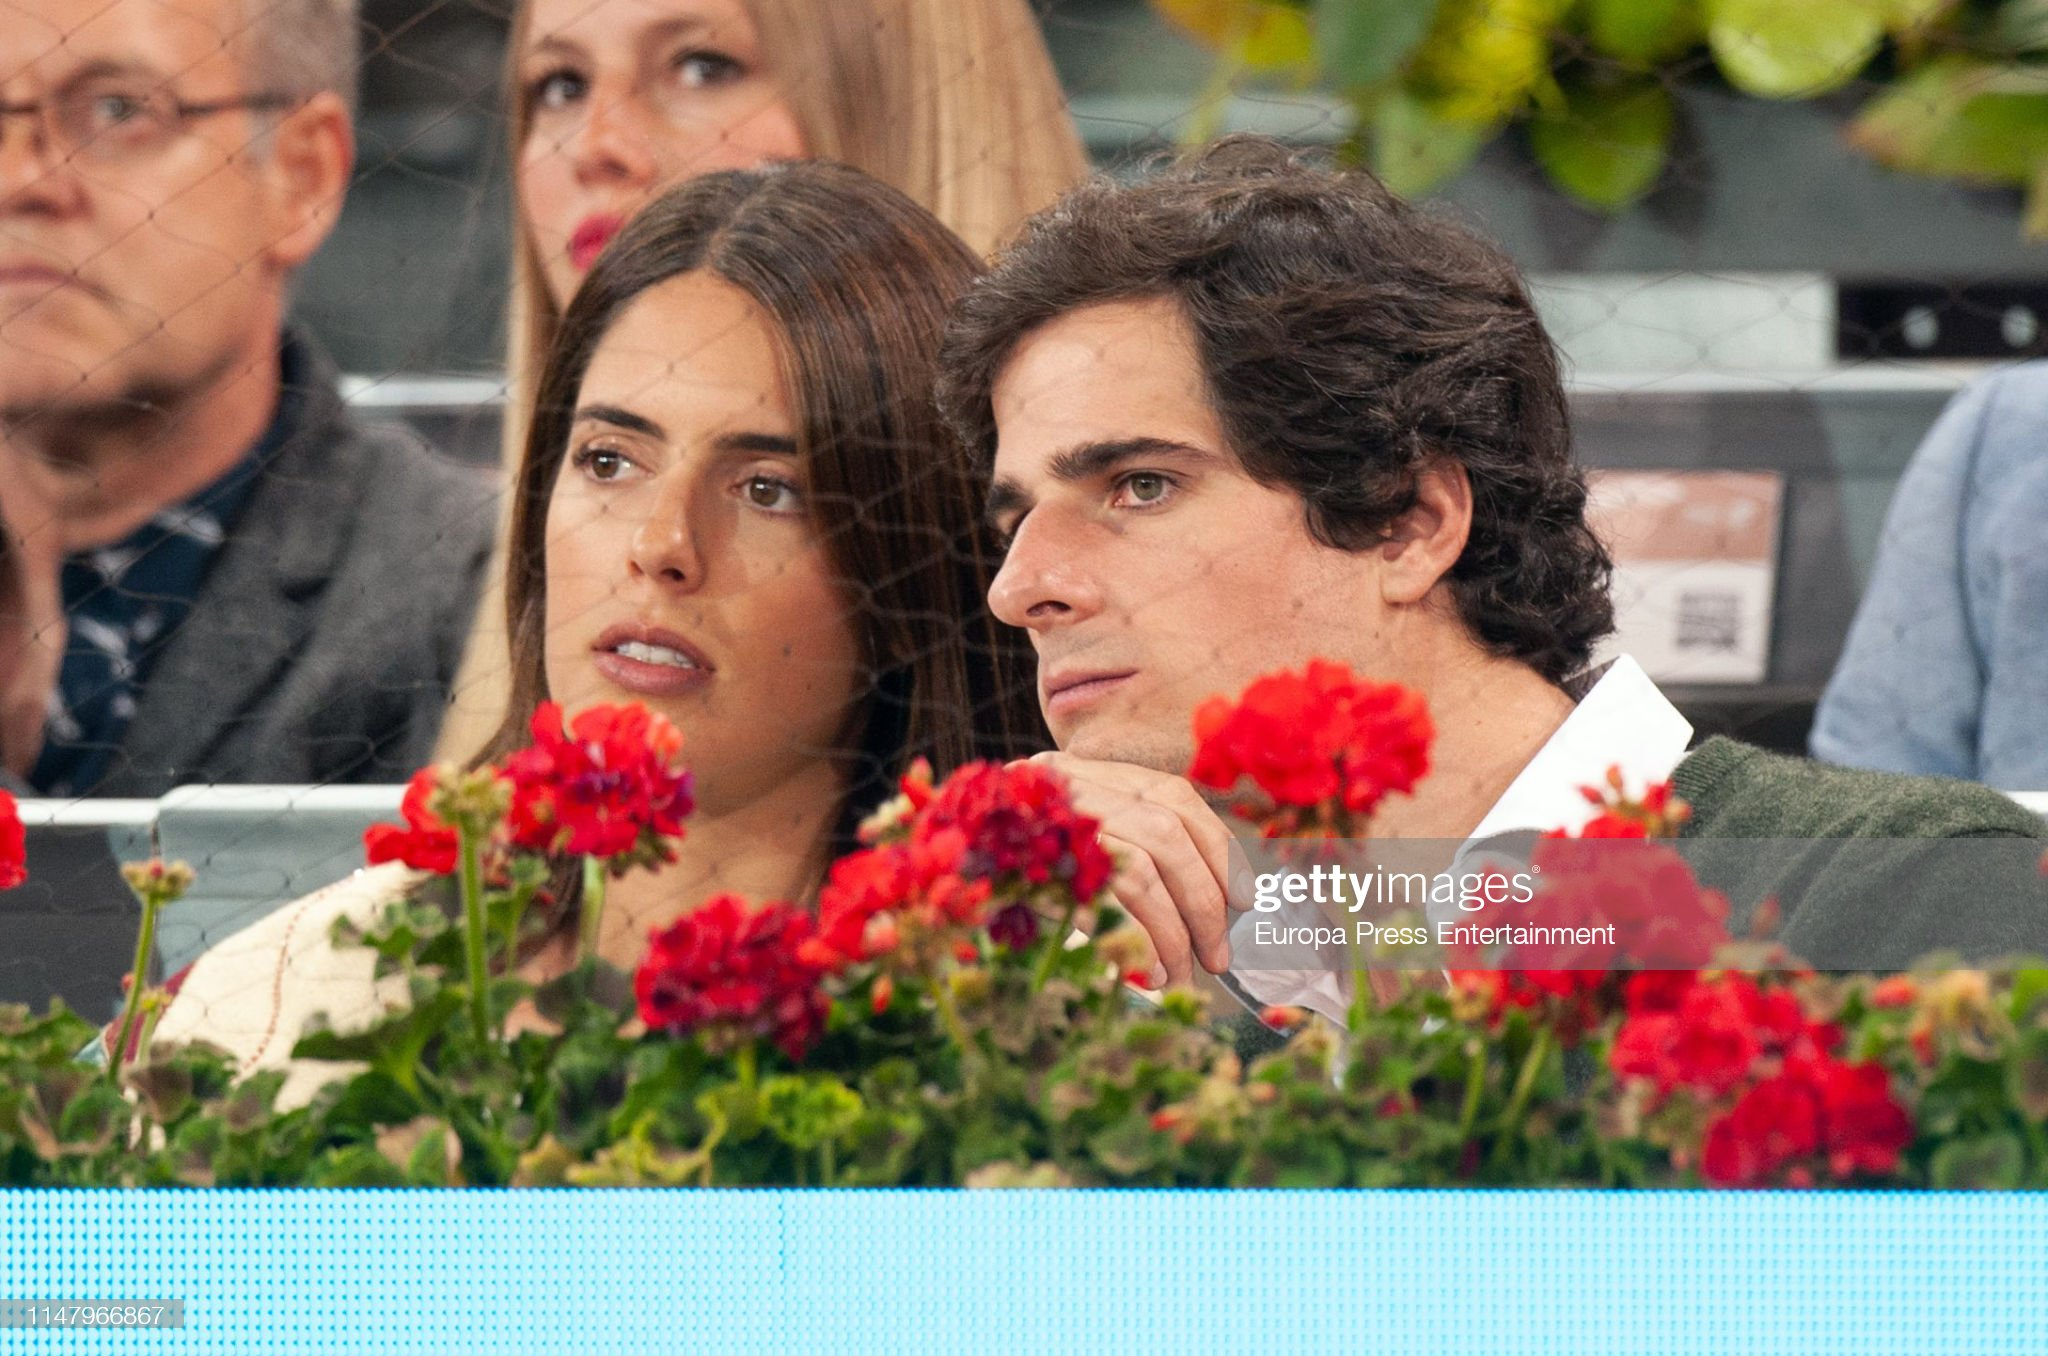 https://media.gettyimages.com/photos/fernando-fitzjames-stuart-y-sols-and-sofia-palazuelo-attend-mutua-picture-id1147966867?s=2048x2048